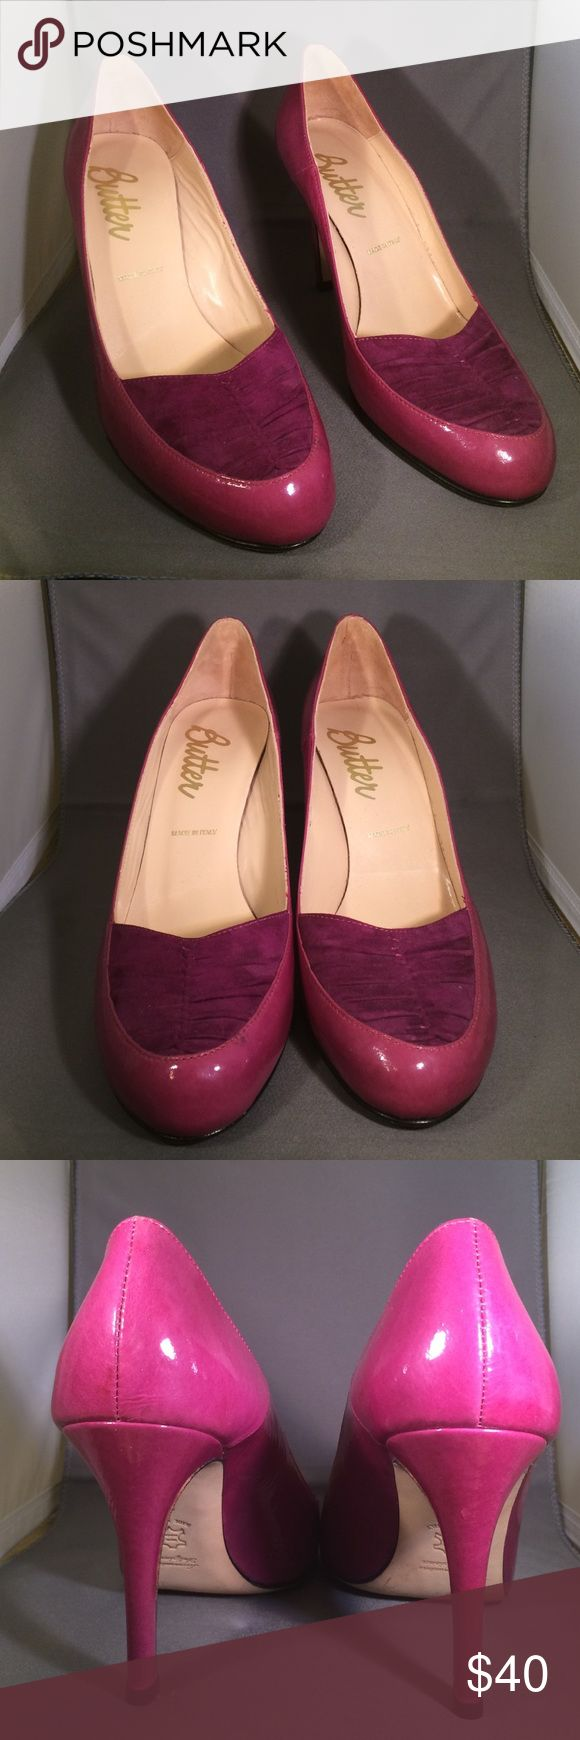 Butter Fuscia Pump Sexy pump will add a pop of color to your outfit. Excellent used condition Butter Shoes Shoes Heels